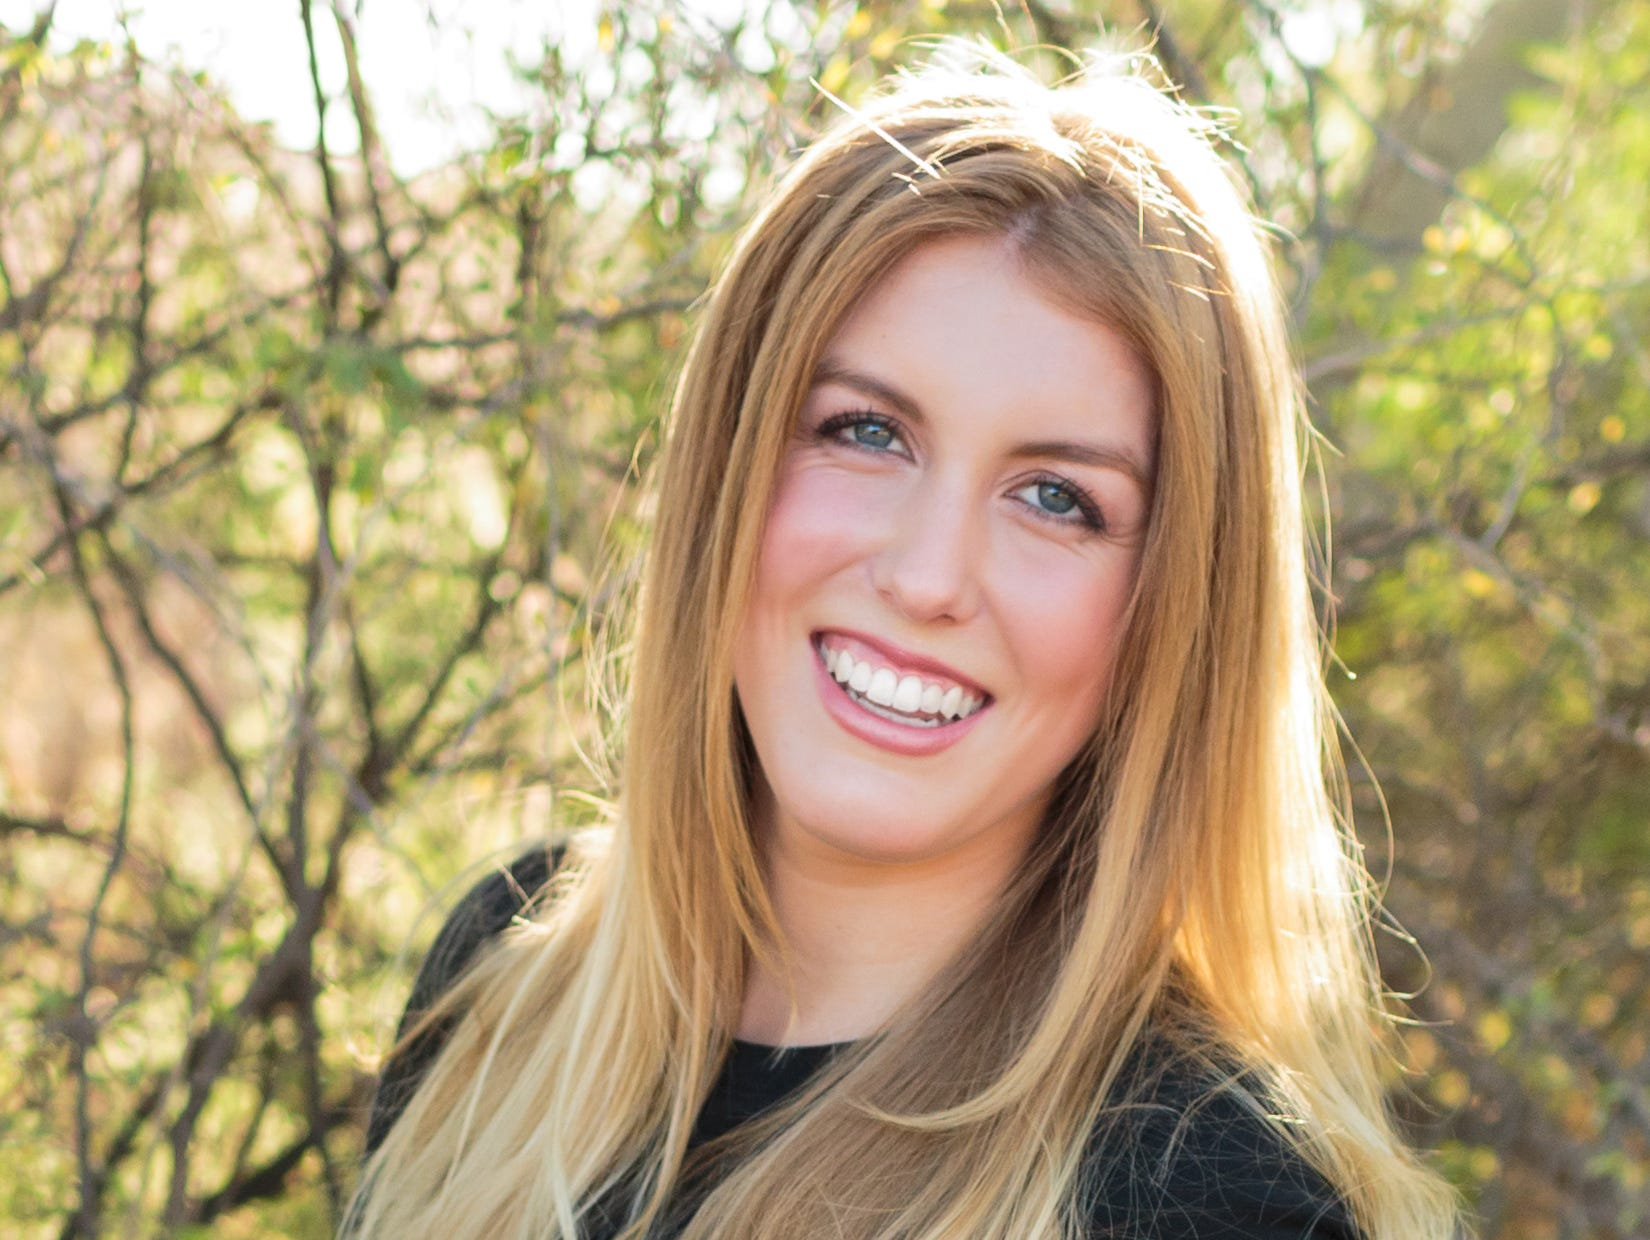 Arianna Williams, from Phoenix Shadow Mountain, is the azcentral.com Sports Awards Academic All-Star of the Week, presented by Fry's, for March 30-April 6.